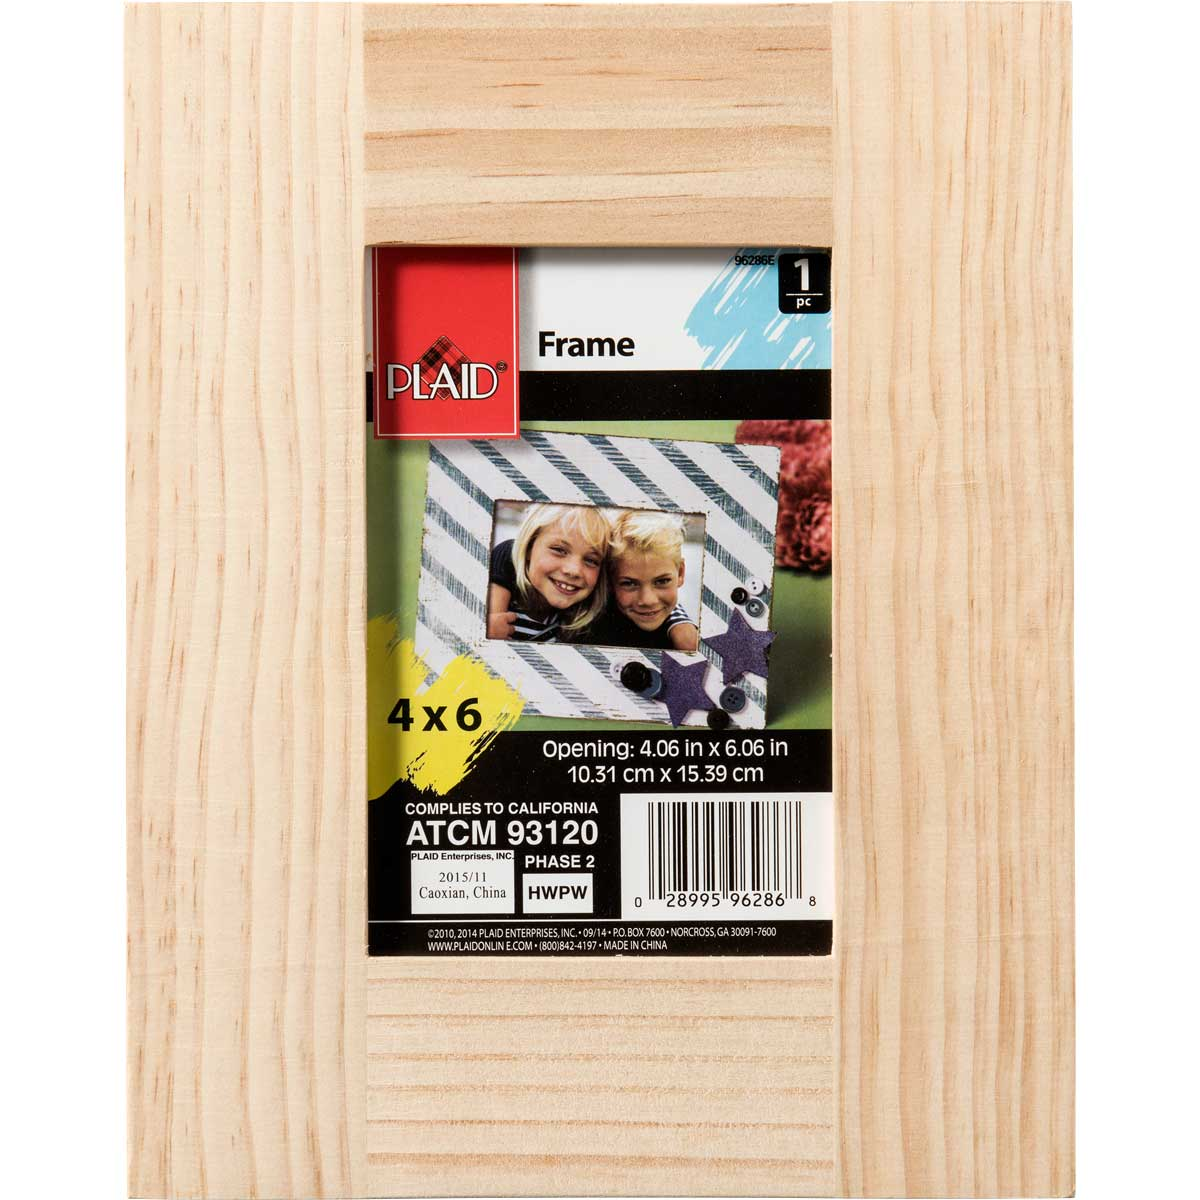 Plaid ® Wood Surfaces - Frames - Medium Memory Frame with Easel Back - 96286